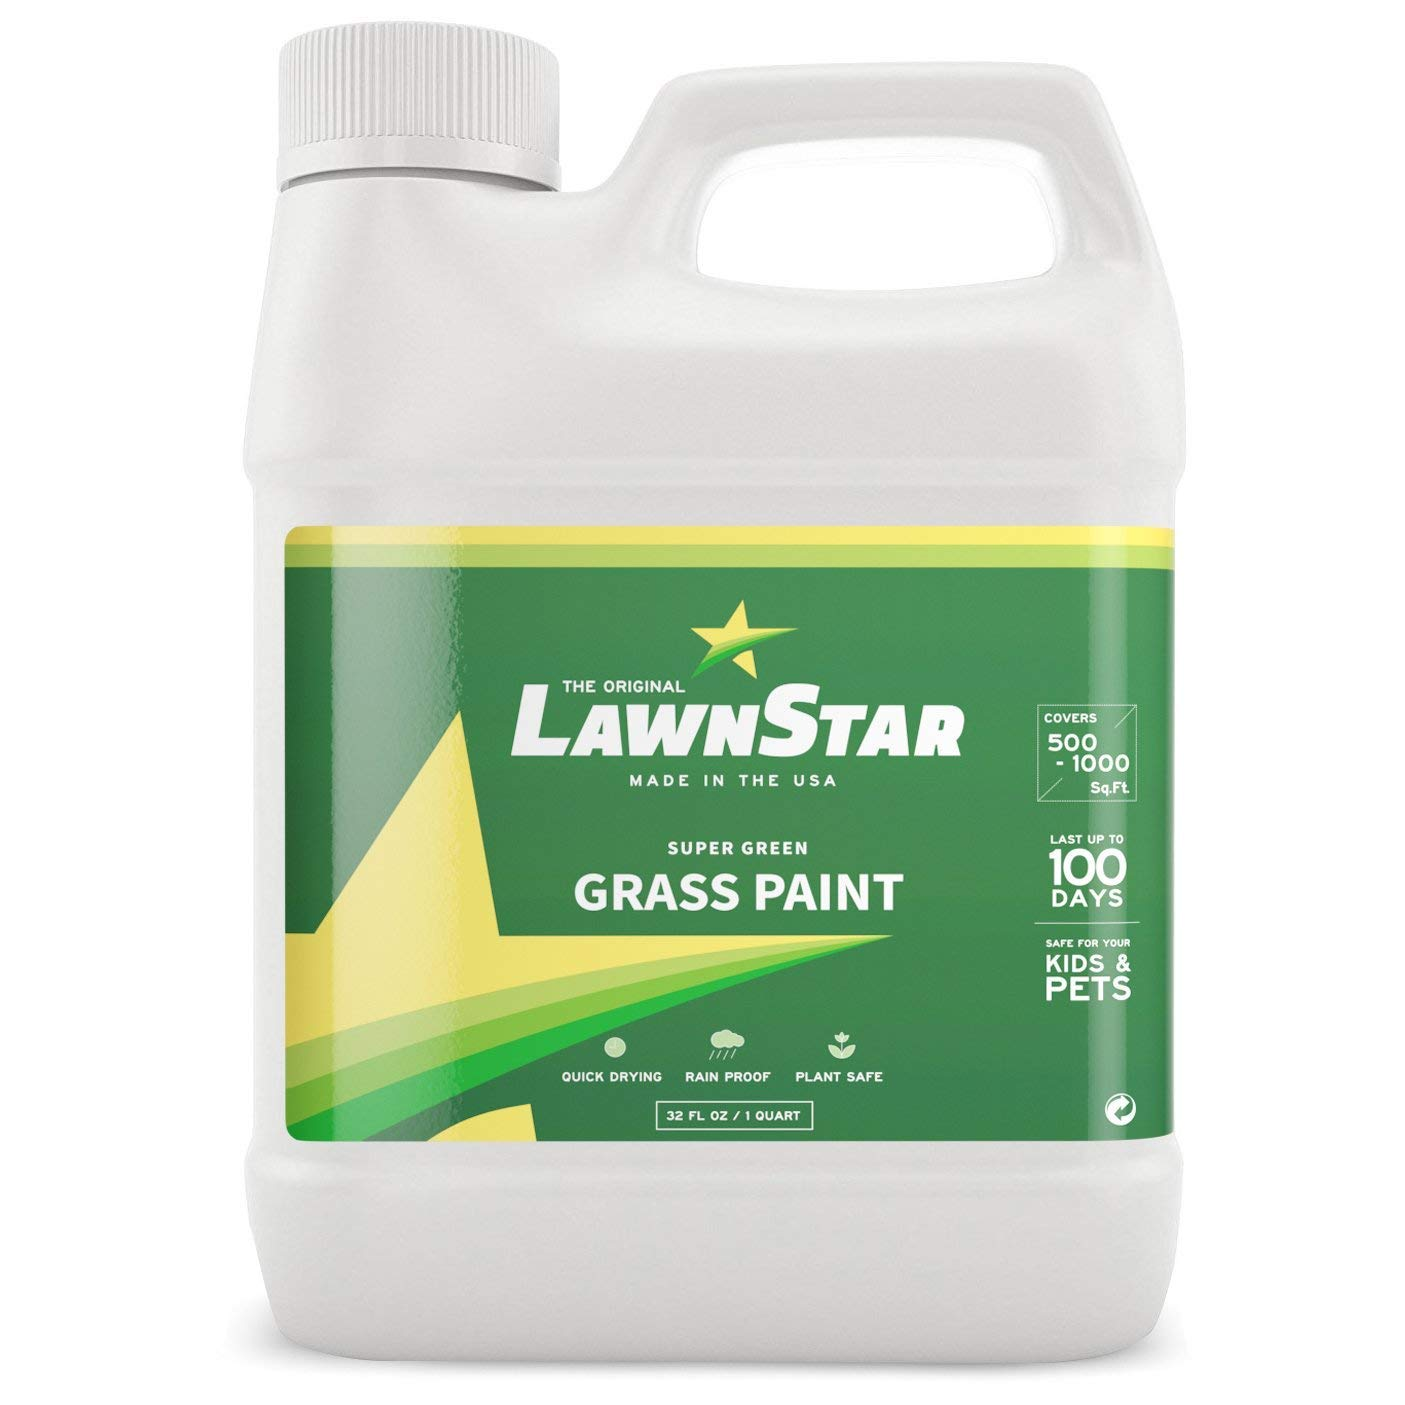 Grass Paint Concentrate (500-1,000 sq ft) - for Dormant, Patchy or Faded Lawn - Lush Green Turf Colorant (32 fl oz)